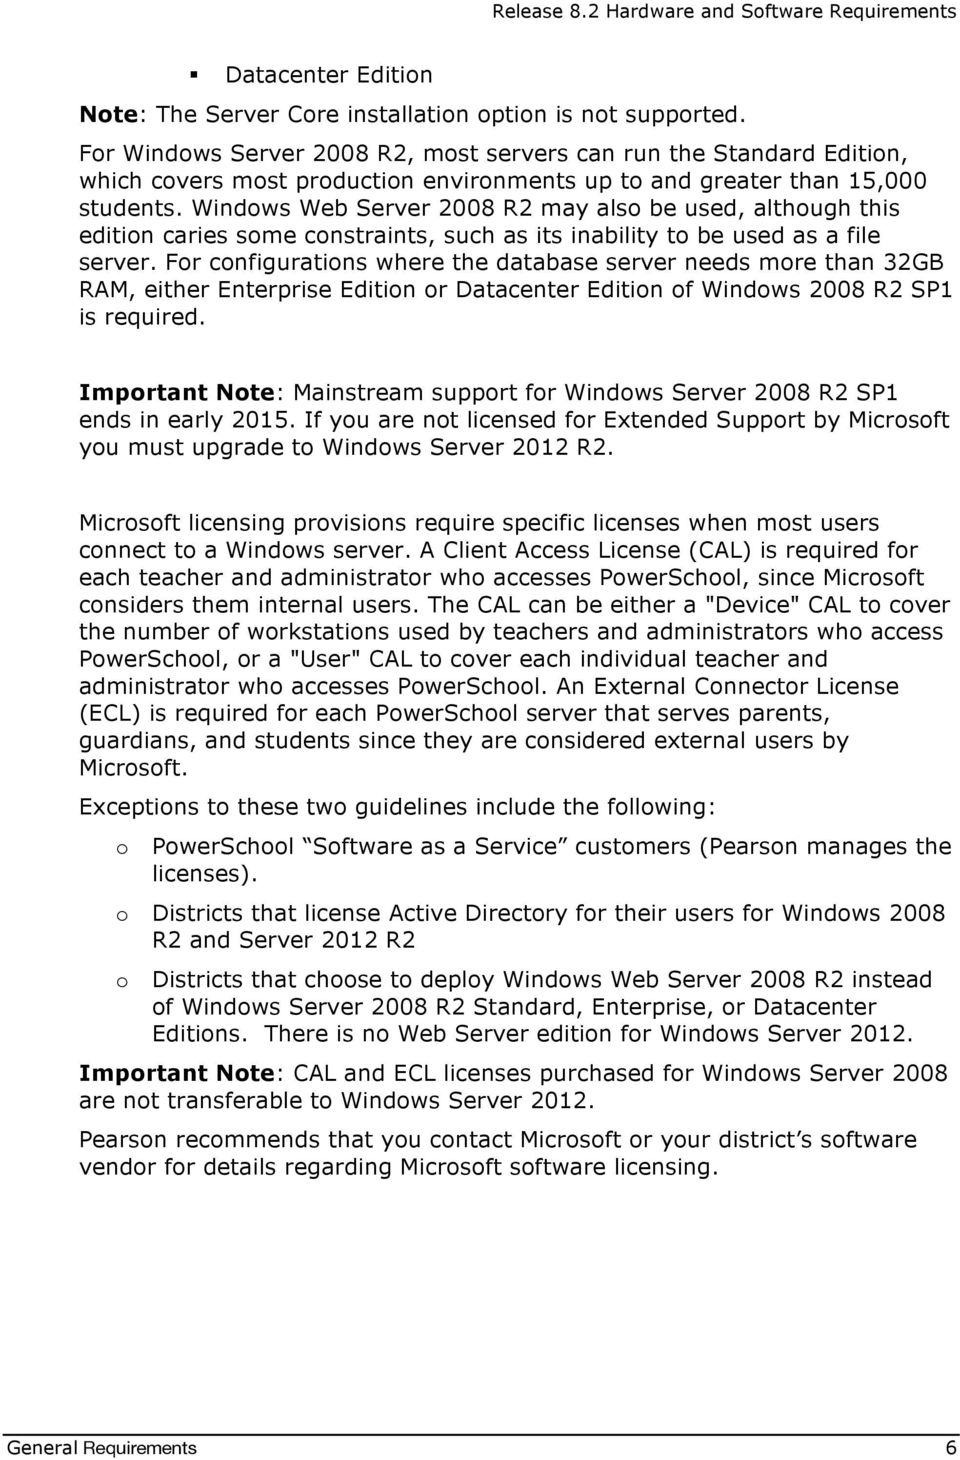 Windows Web Server 2008 R2 may also be used, although this edition caries some constraints, such as its inability to be used as a file server.